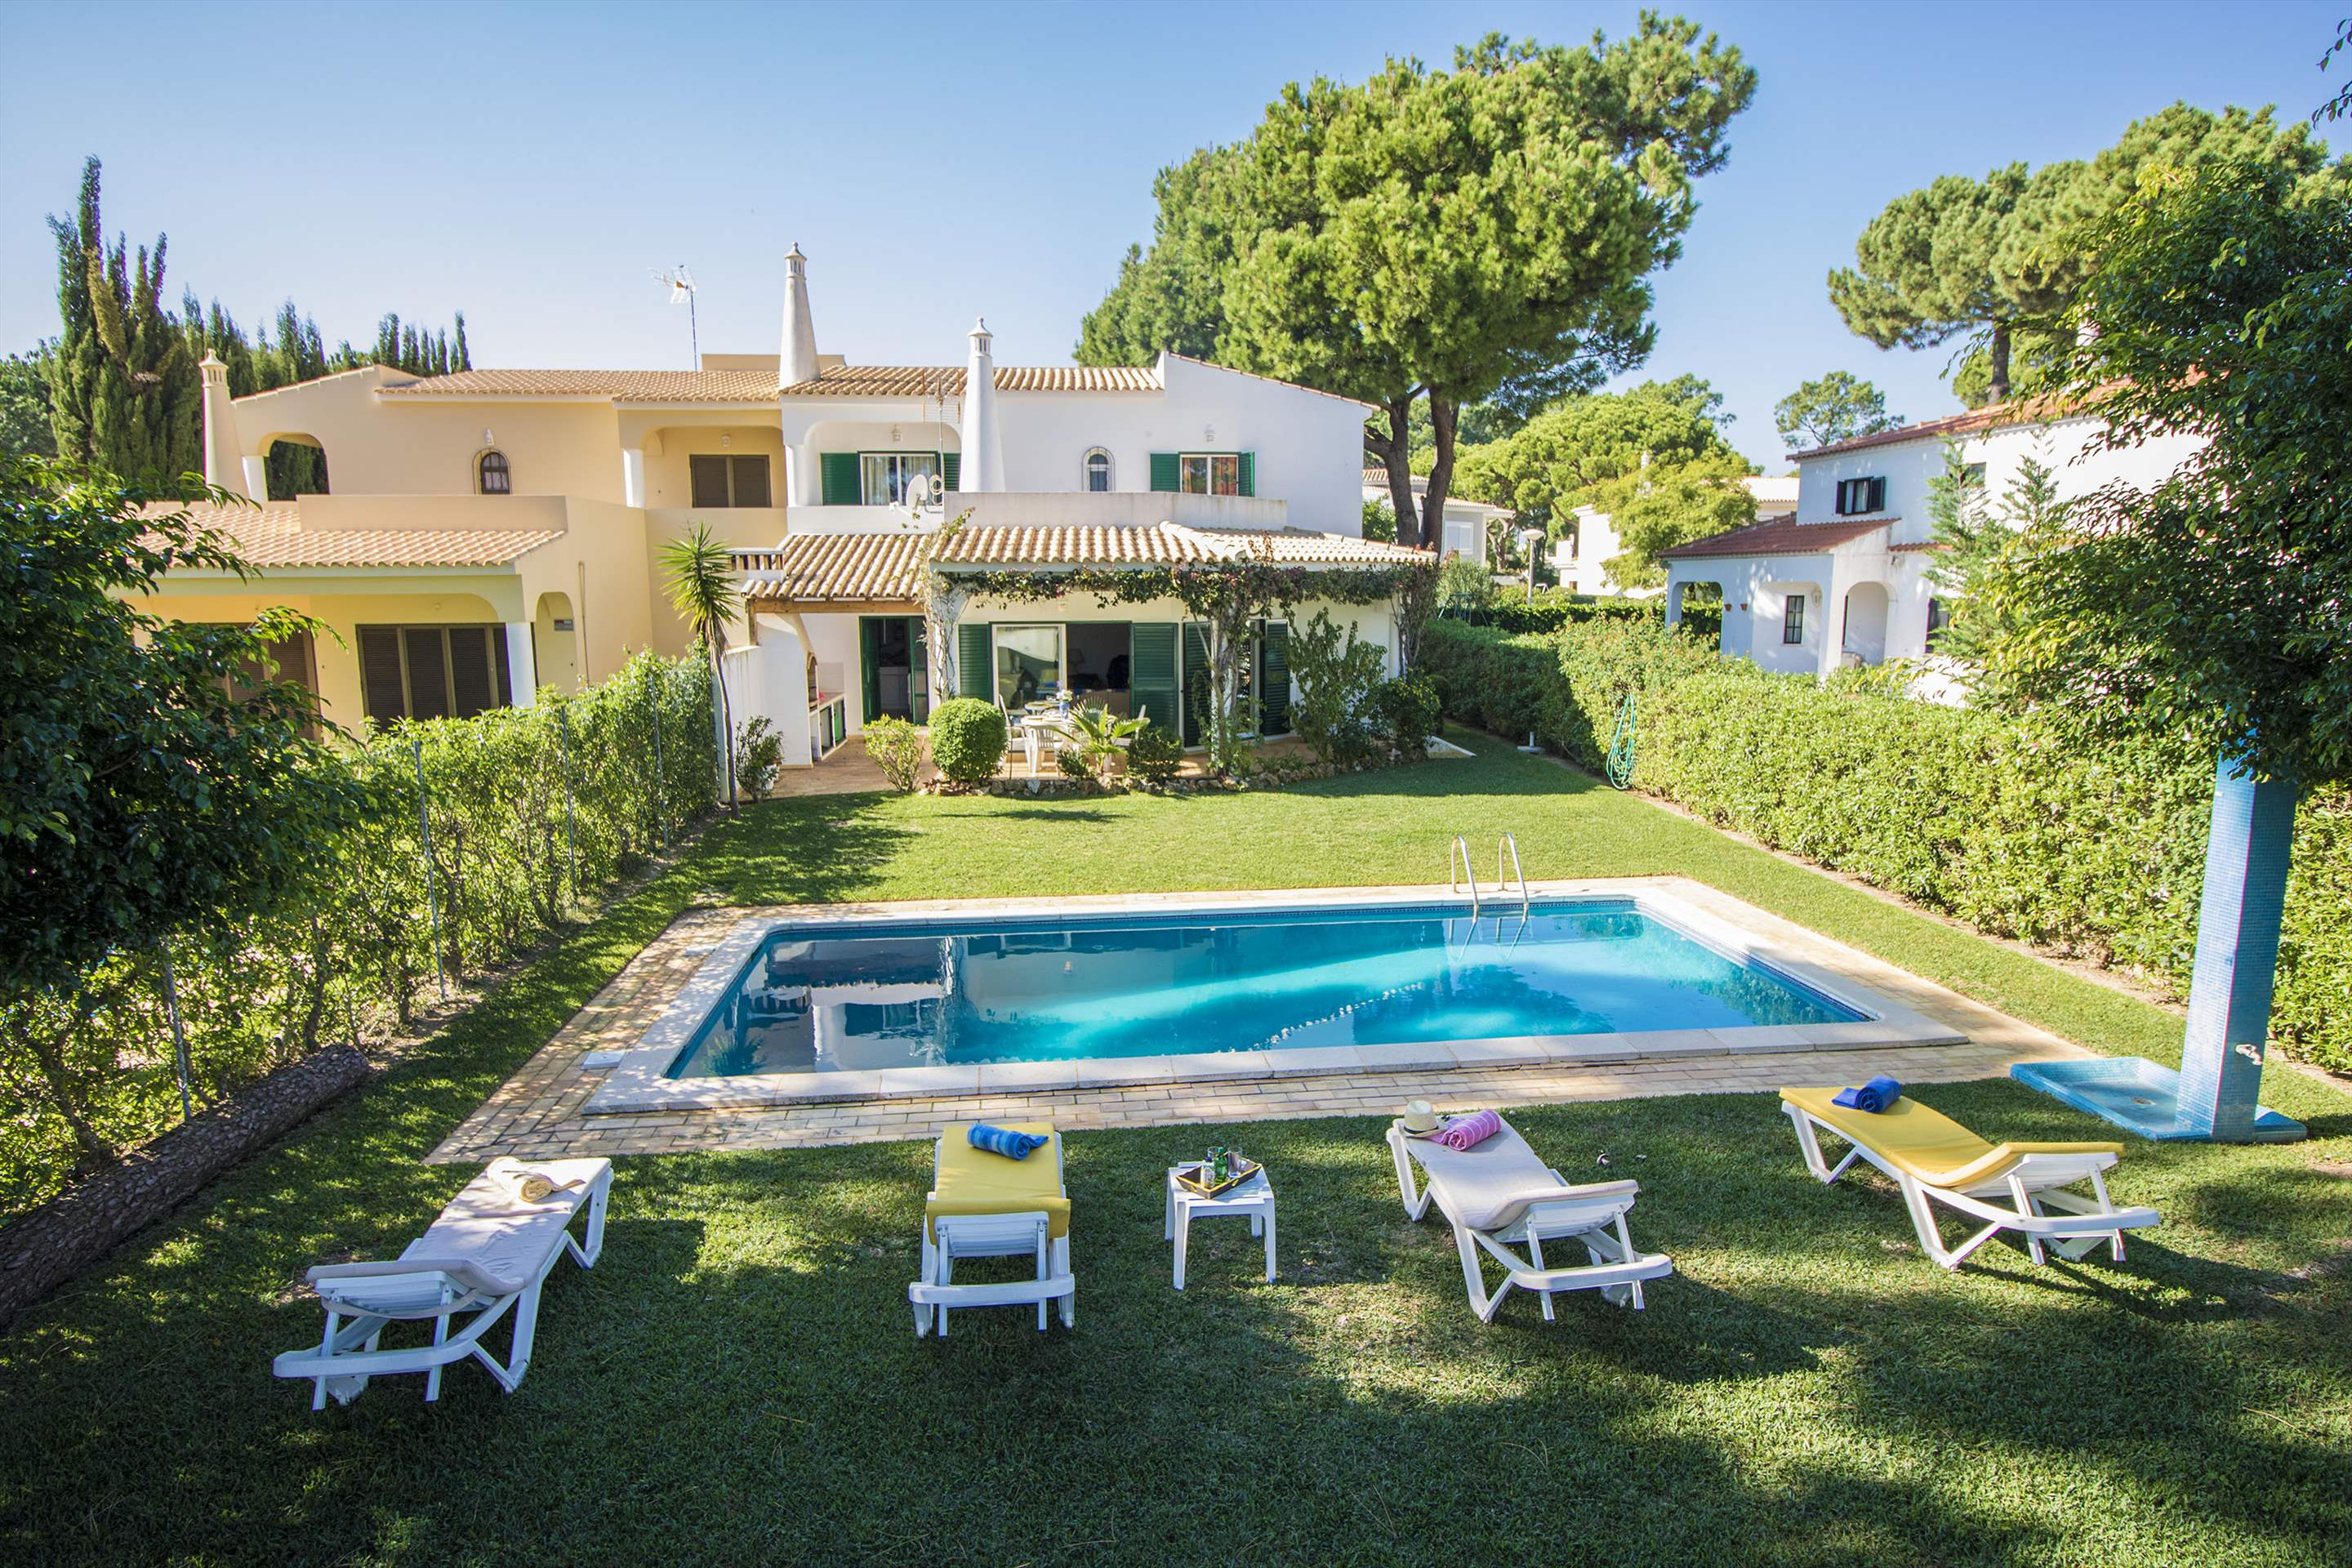 Villa Clara, 4 bedroom villa in Vilamoura Area, Algarve Photo #13